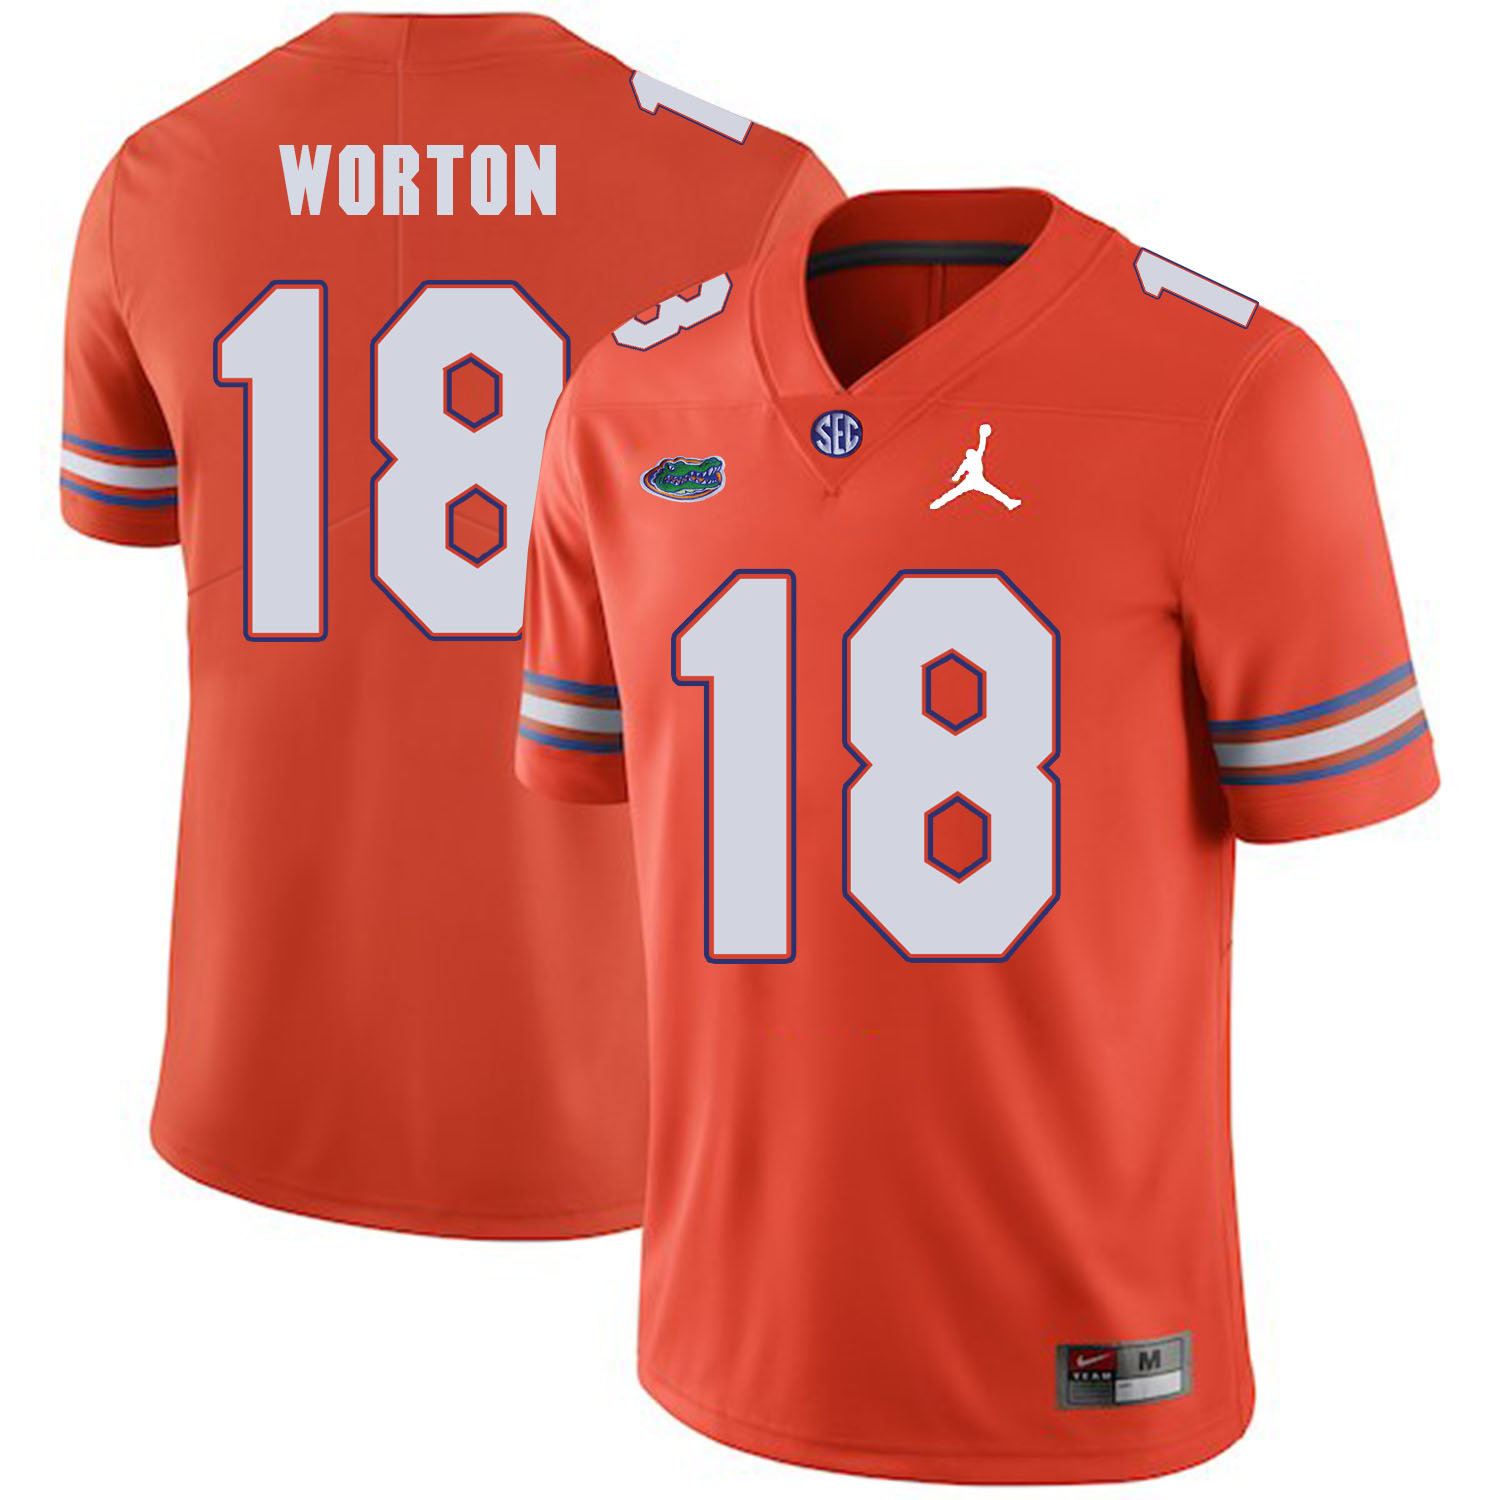 Florida Gators 18 C.J. Worton Orange College Football Jersey